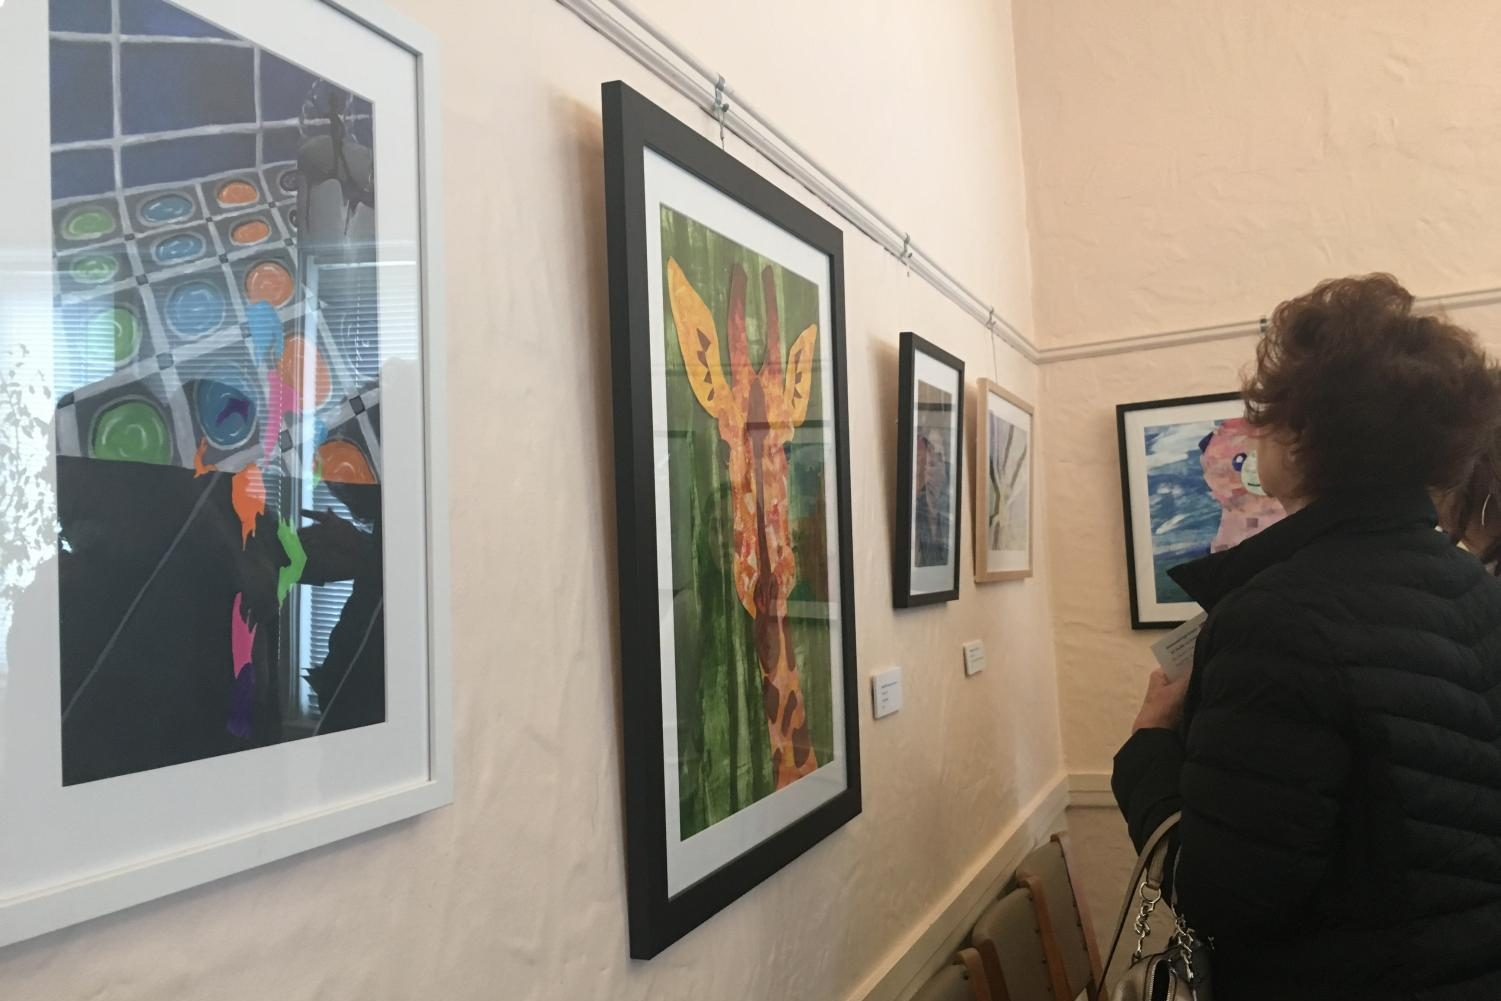 Exhibit featuring work from AP Studio Art students from March 10 to April 1 in The Monday Club gallery located at 37 S. Maple Ave in Webster Groves.